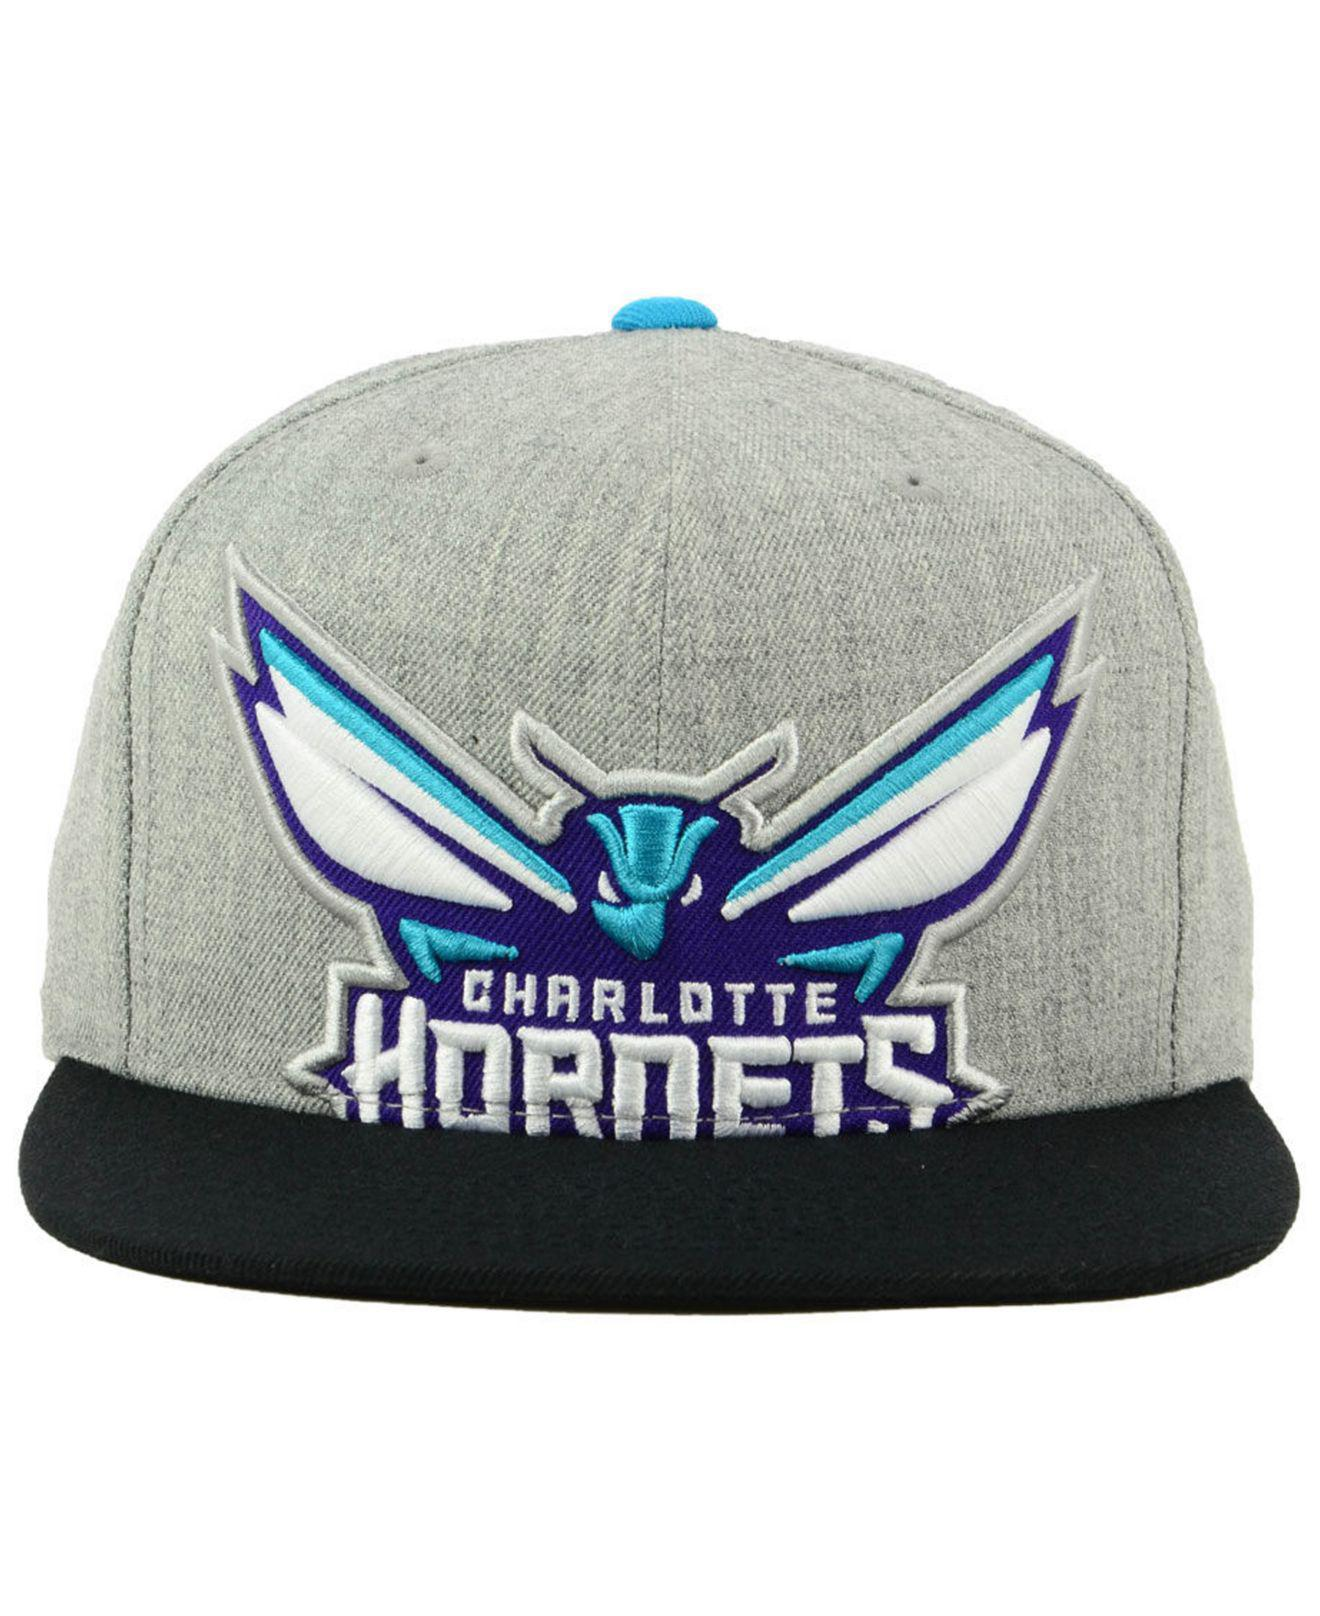 online store e9b76 a8c36 ... side panel cropped snapback cap 844cd 31fe3  coupon for lyst mitchell  ness charlotte hornets cropped heather snapback cap in gray for men 06824